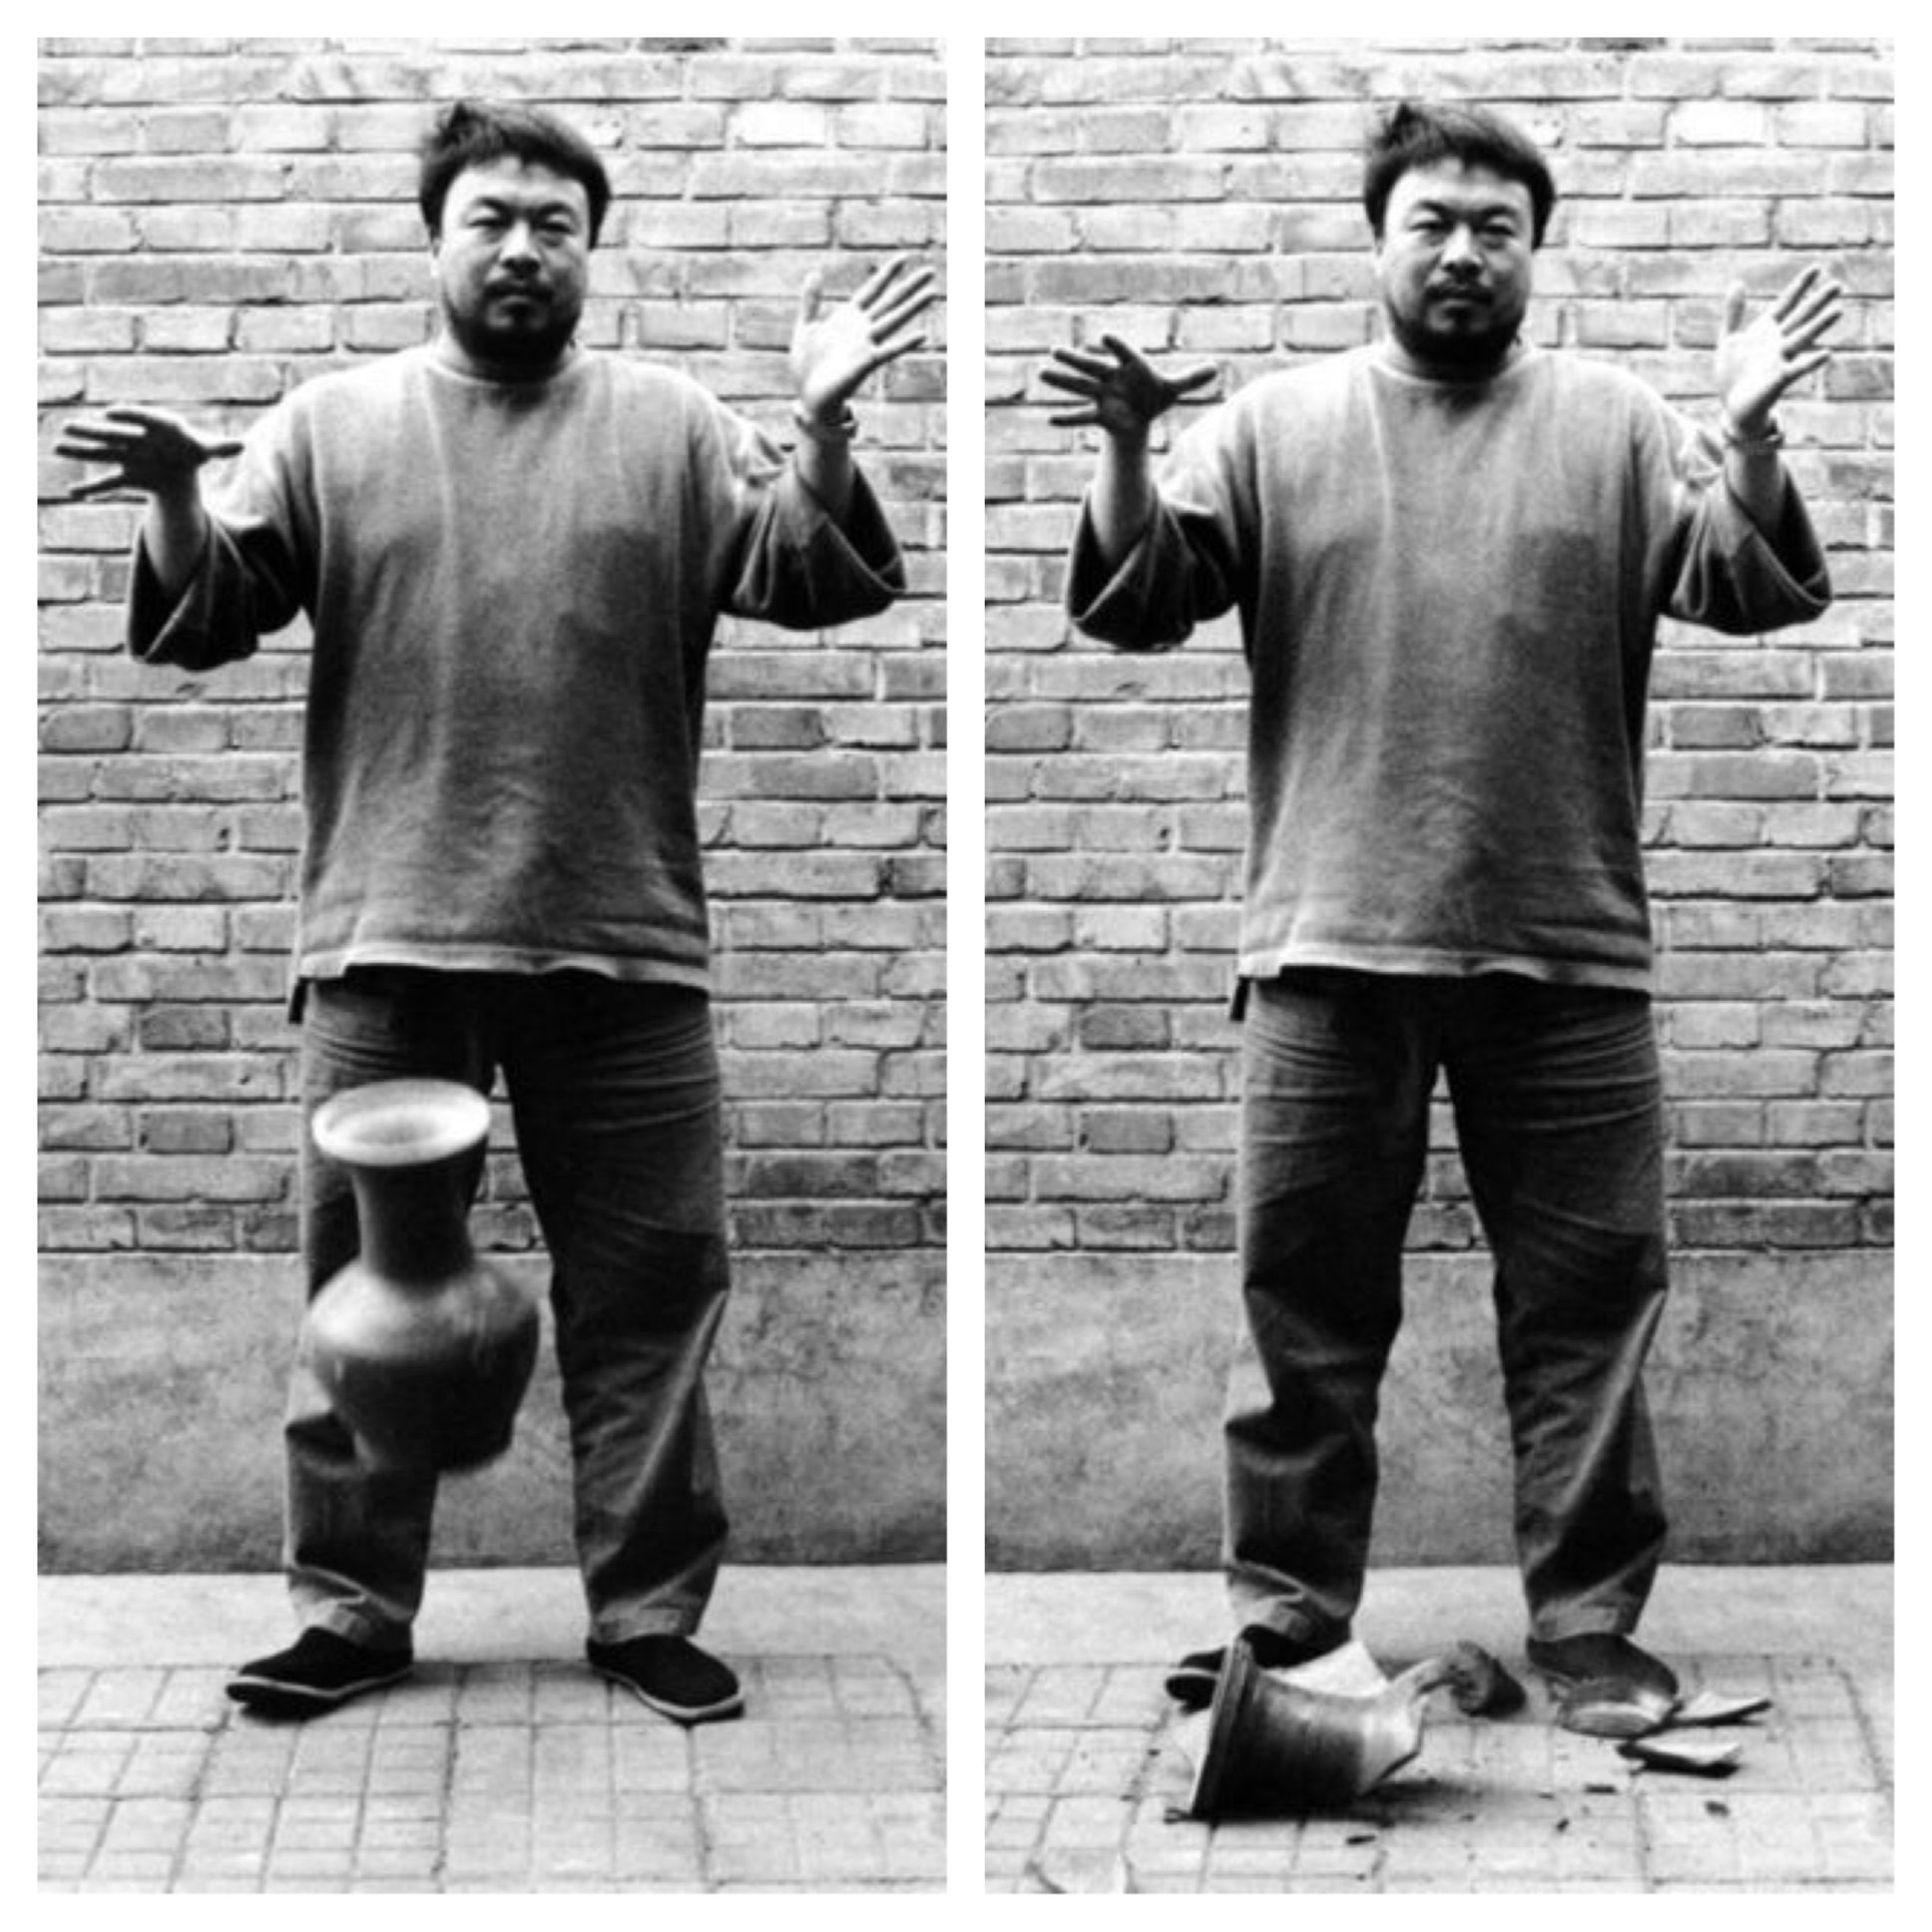 "NOWNESS SELECTS: ARTSY A sneak peek at Ai Wei Wei's forthcoming exhibition, ""Ai Weiwei: According to What?"" at the Brooklyn Museum (opening April 18) #ArmoryShow #FocusChina #NOWNESSselects. For more from The Armory Show visit NOWNESS.com"